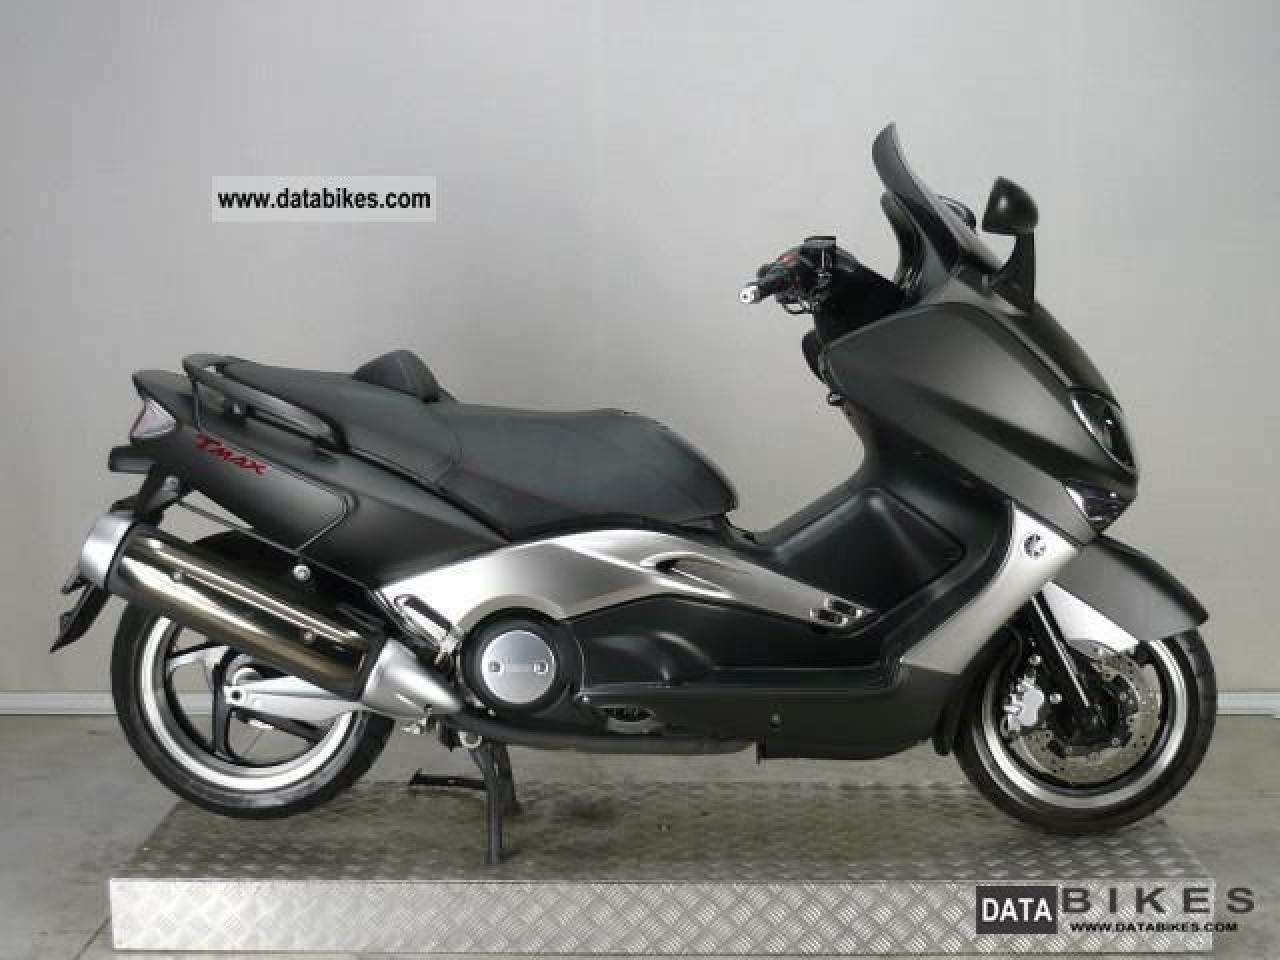 2007 yamaha tmax 500 special edition moto zombdrive com. Black Bedroom Furniture Sets. Home Design Ideas